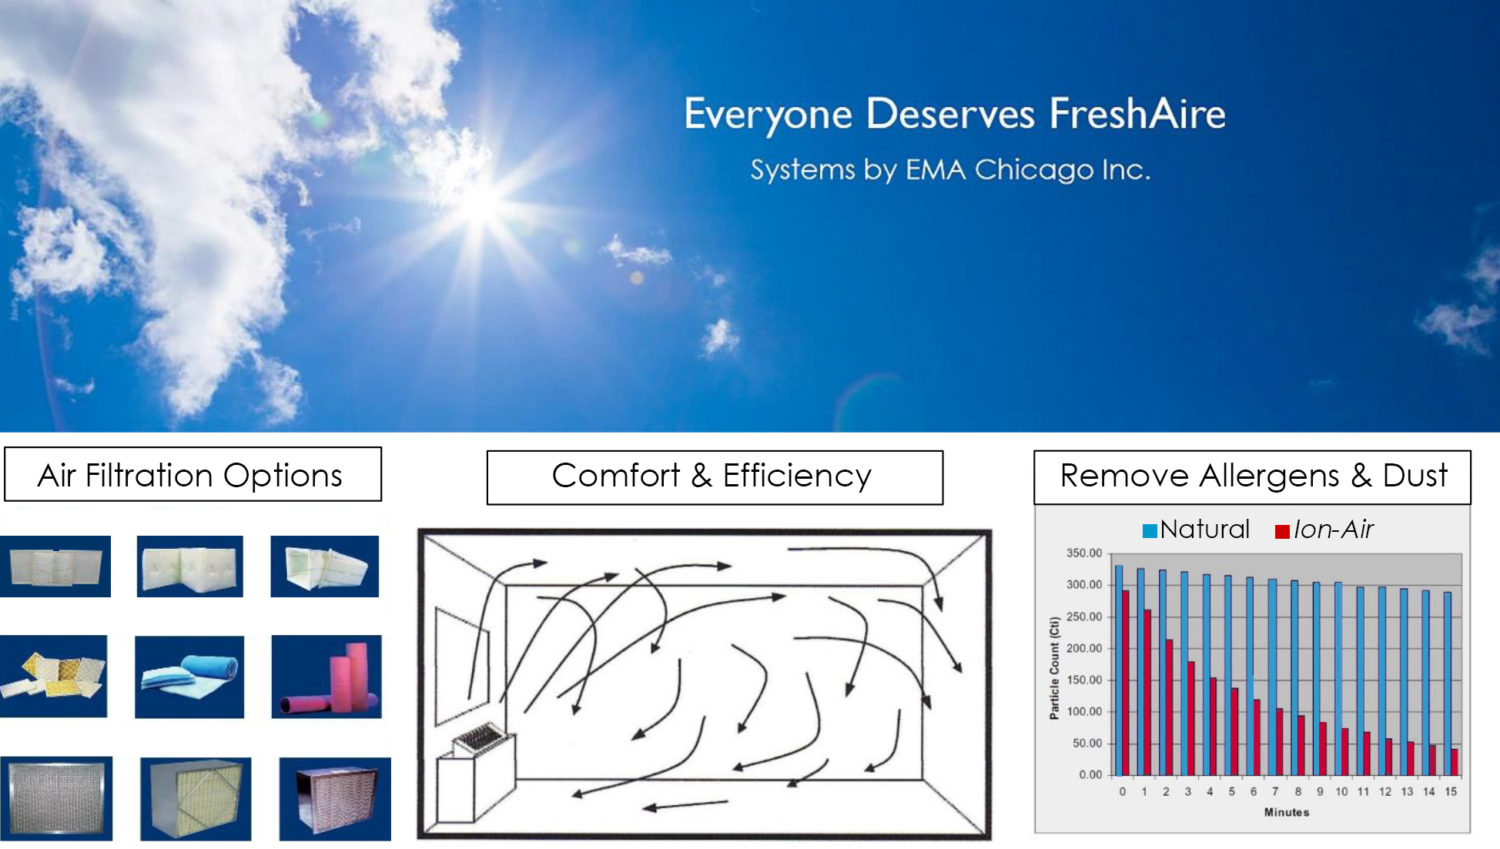 EMA Chicago Inc. improves ventilation systems for health, comfort, and energy efficiency.